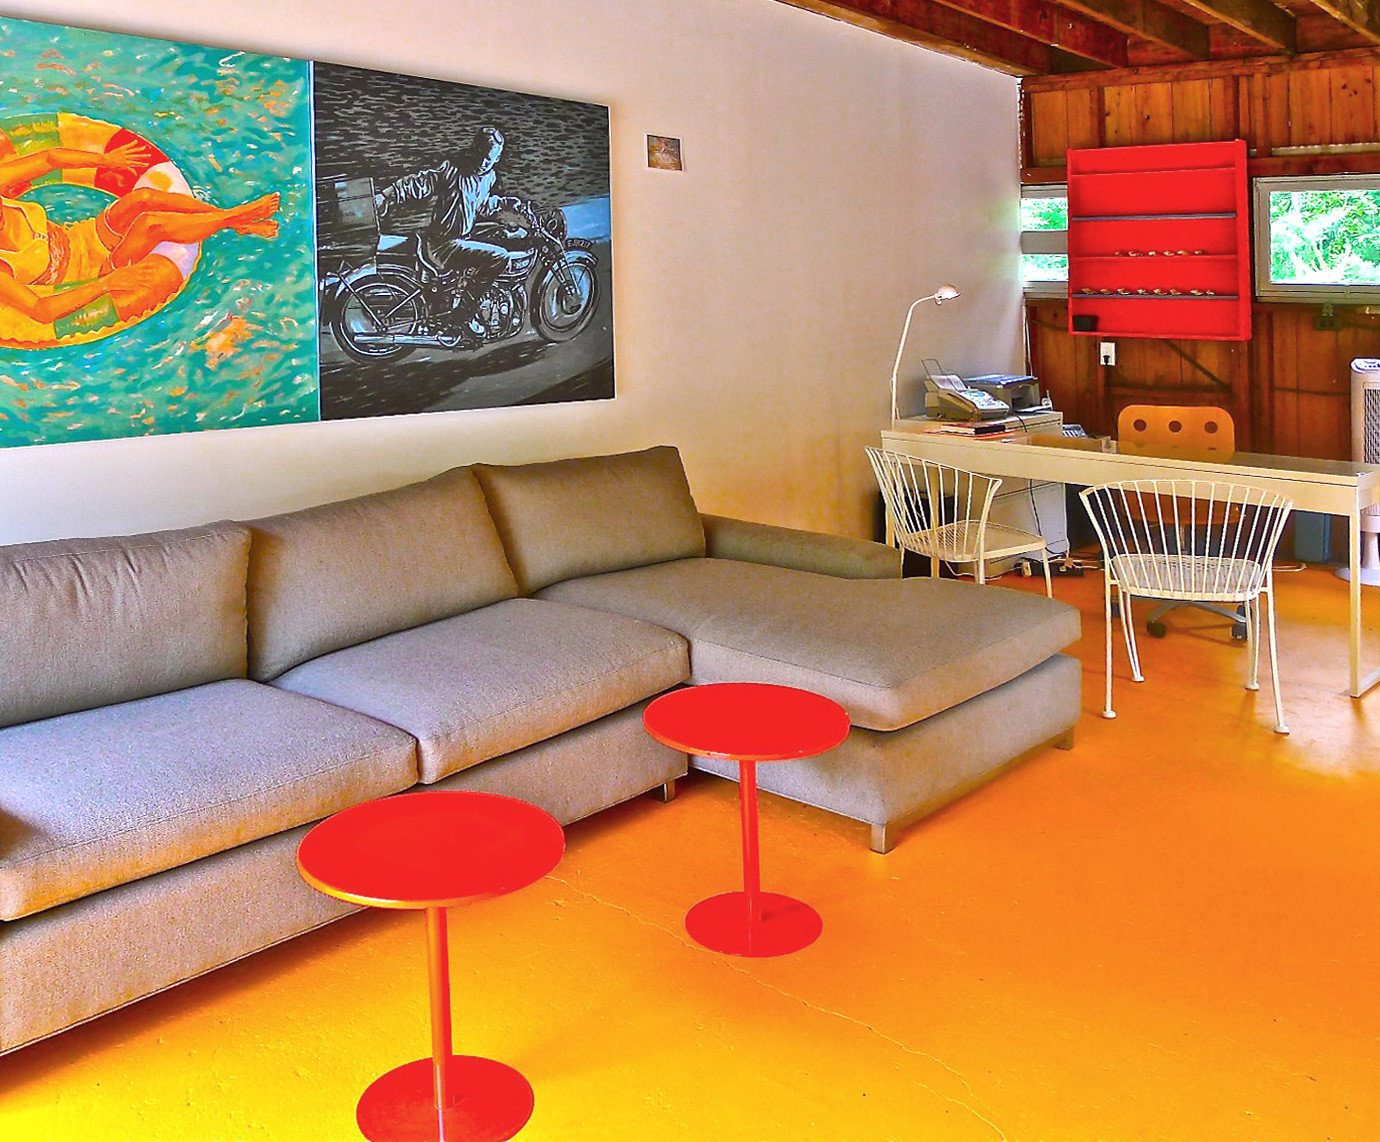 Boutique Budget Hip Suite living room red recreation room seat sofa orange colorful colored